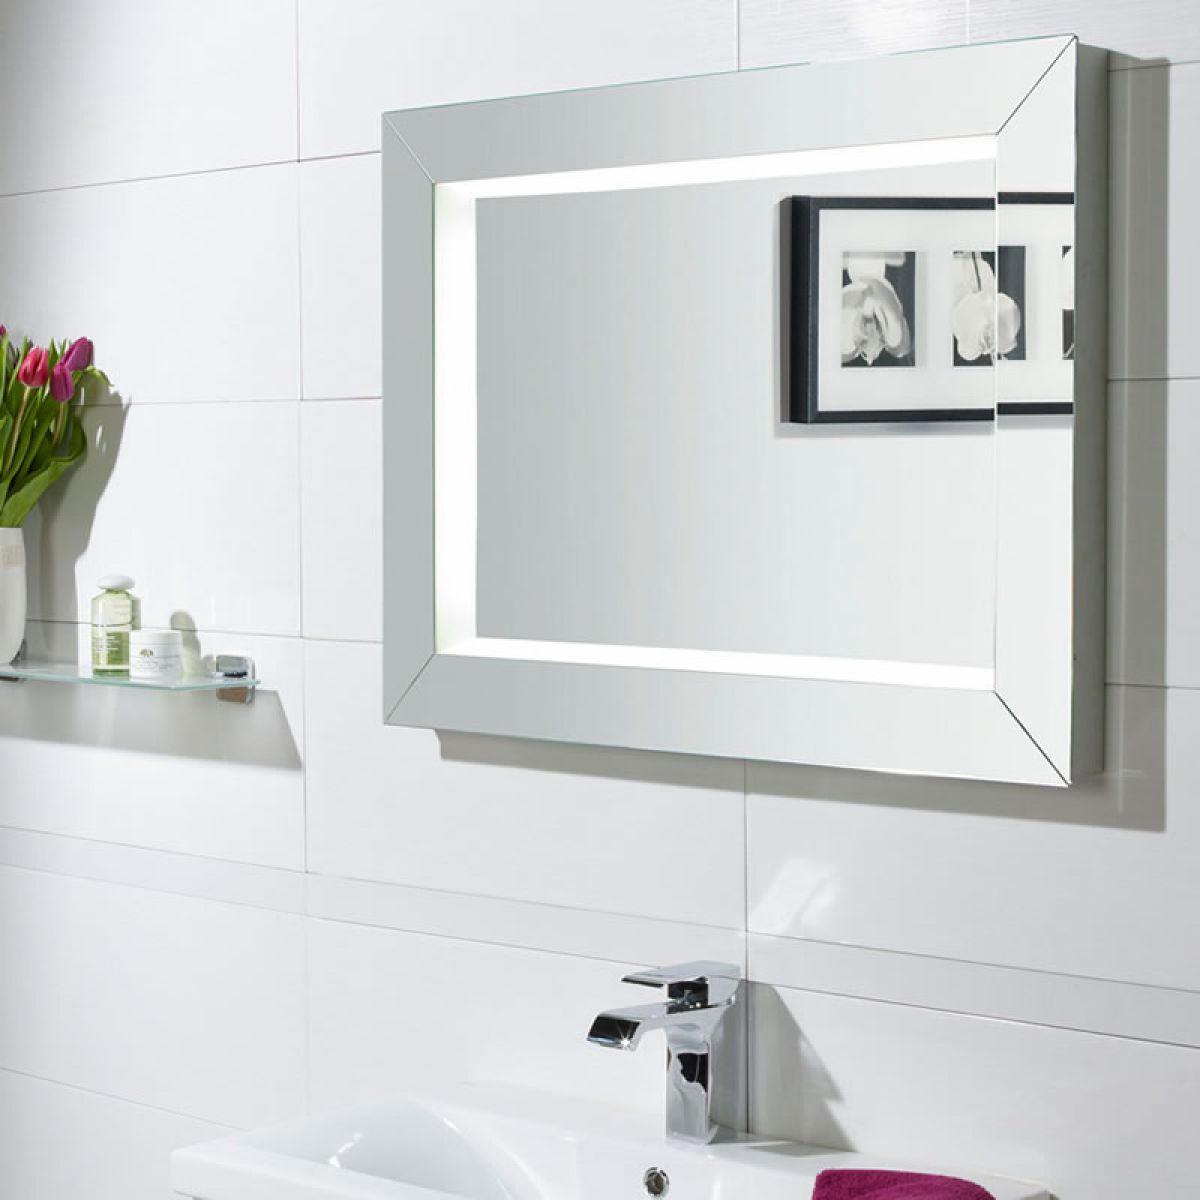 Roper Rhodes Sense Illuminated Bathroom Mirror Uk Bathrooms